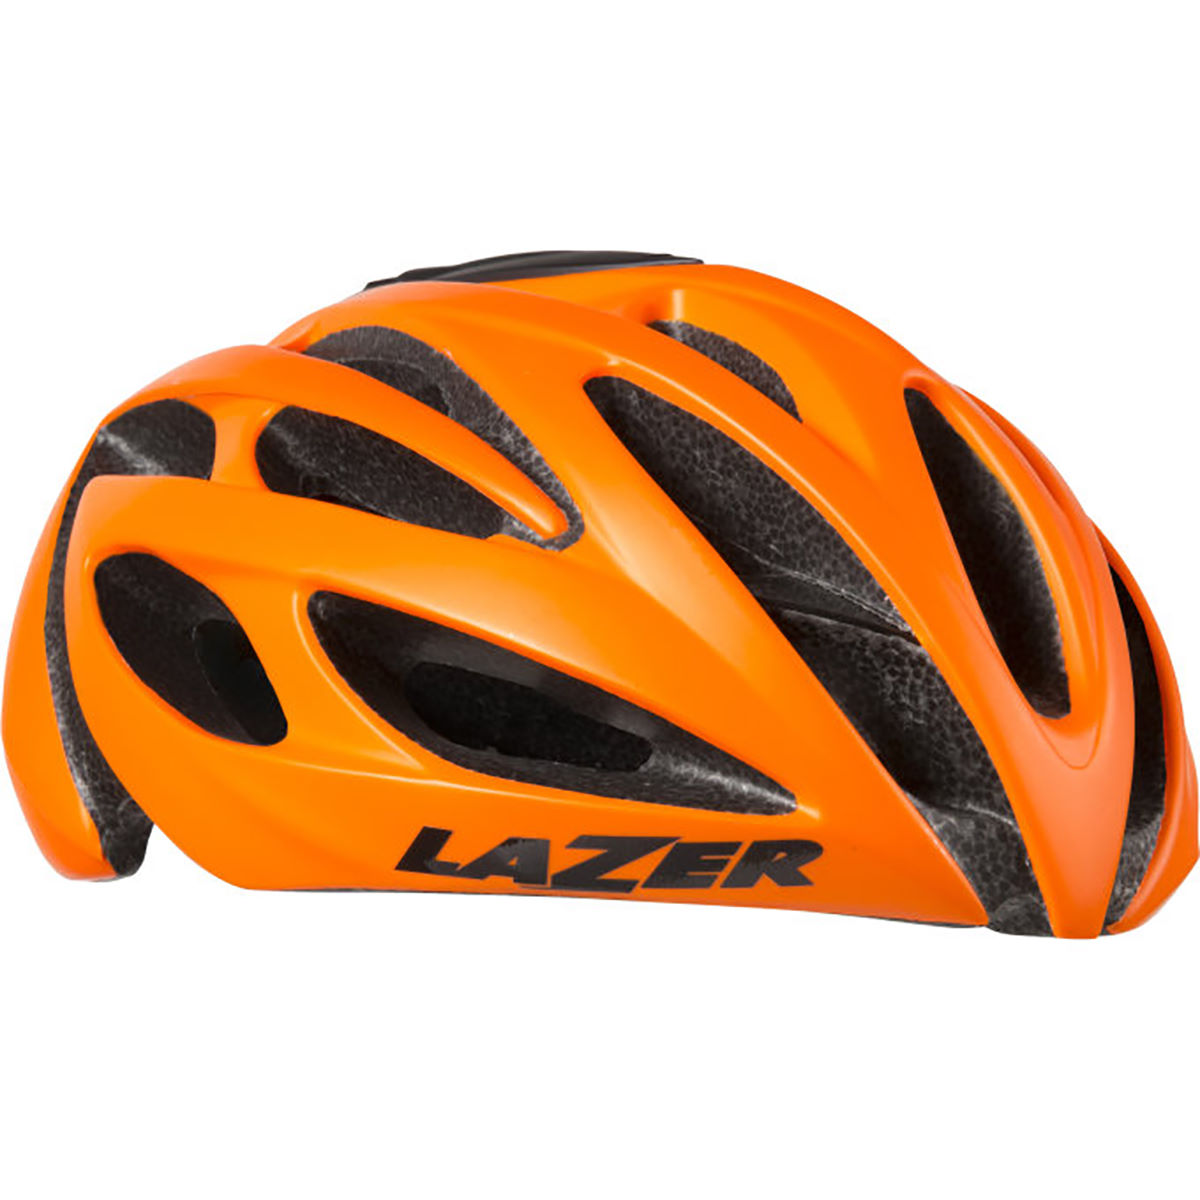 Lazer O2 Flash Orange Helmet - Cascos de carretera